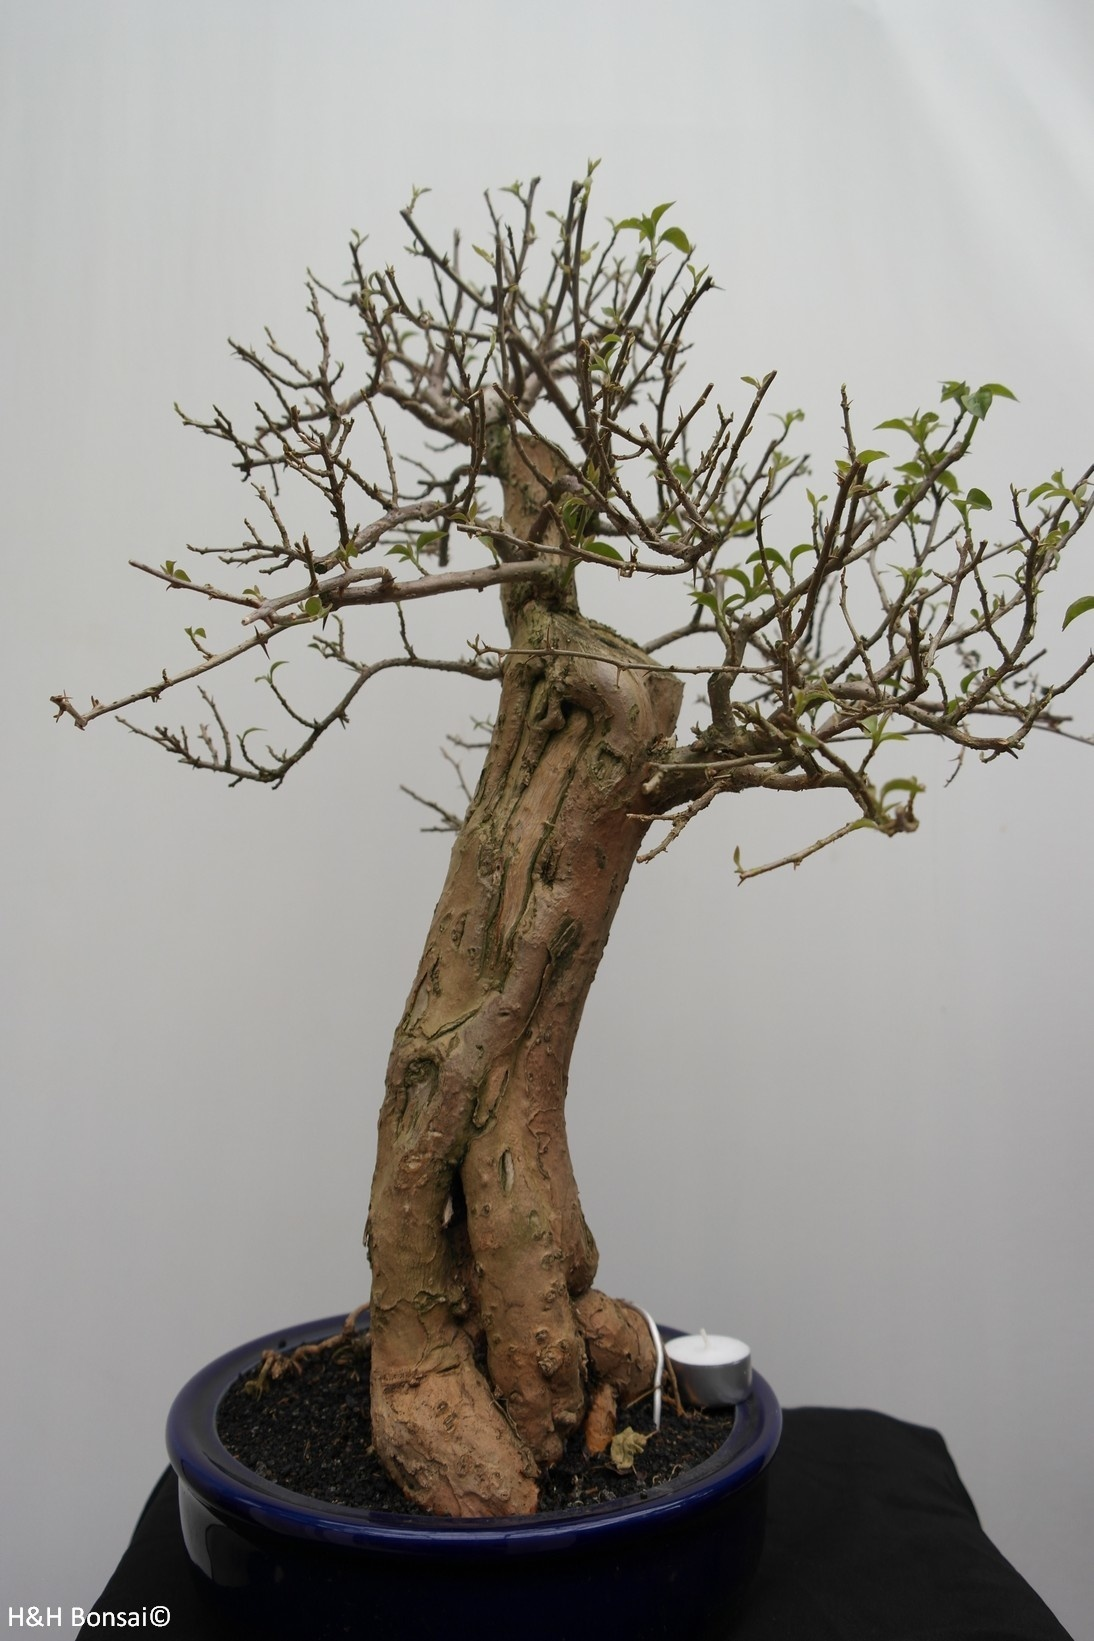 Bonsai Bougainvillea glabra, no. 7823